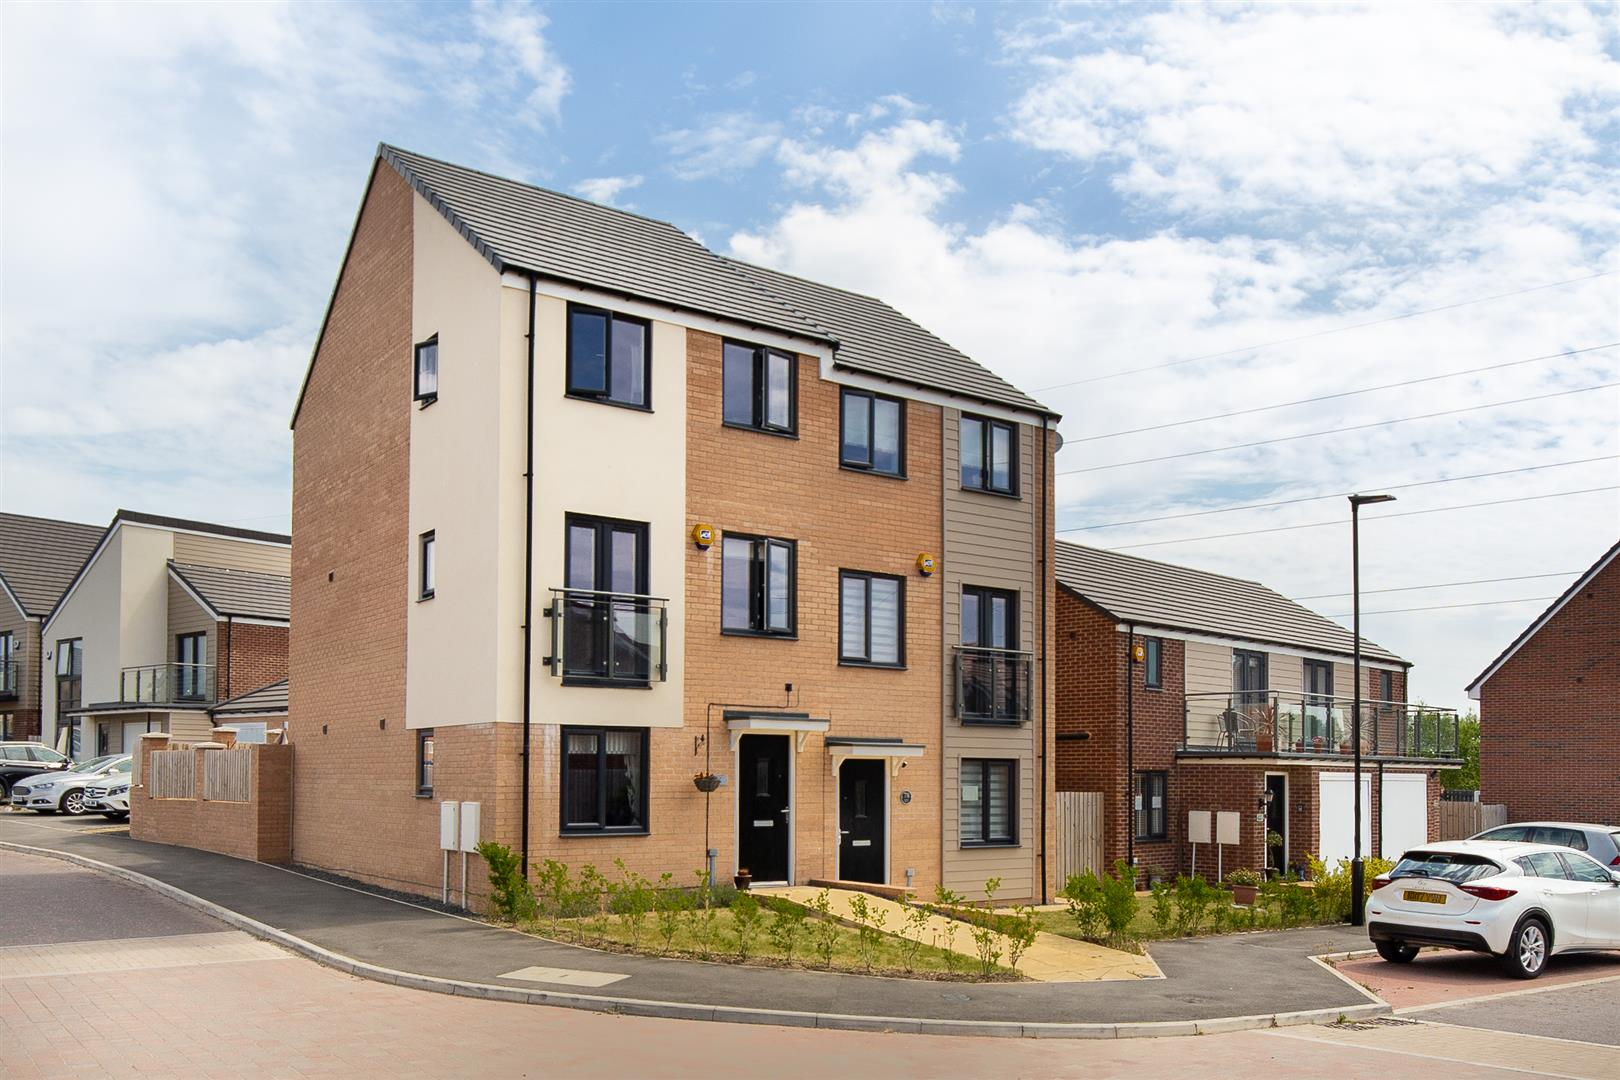 3 bed town house for sale in Newcastle Upon Tyne, NE13 9DW  - Property Image 1